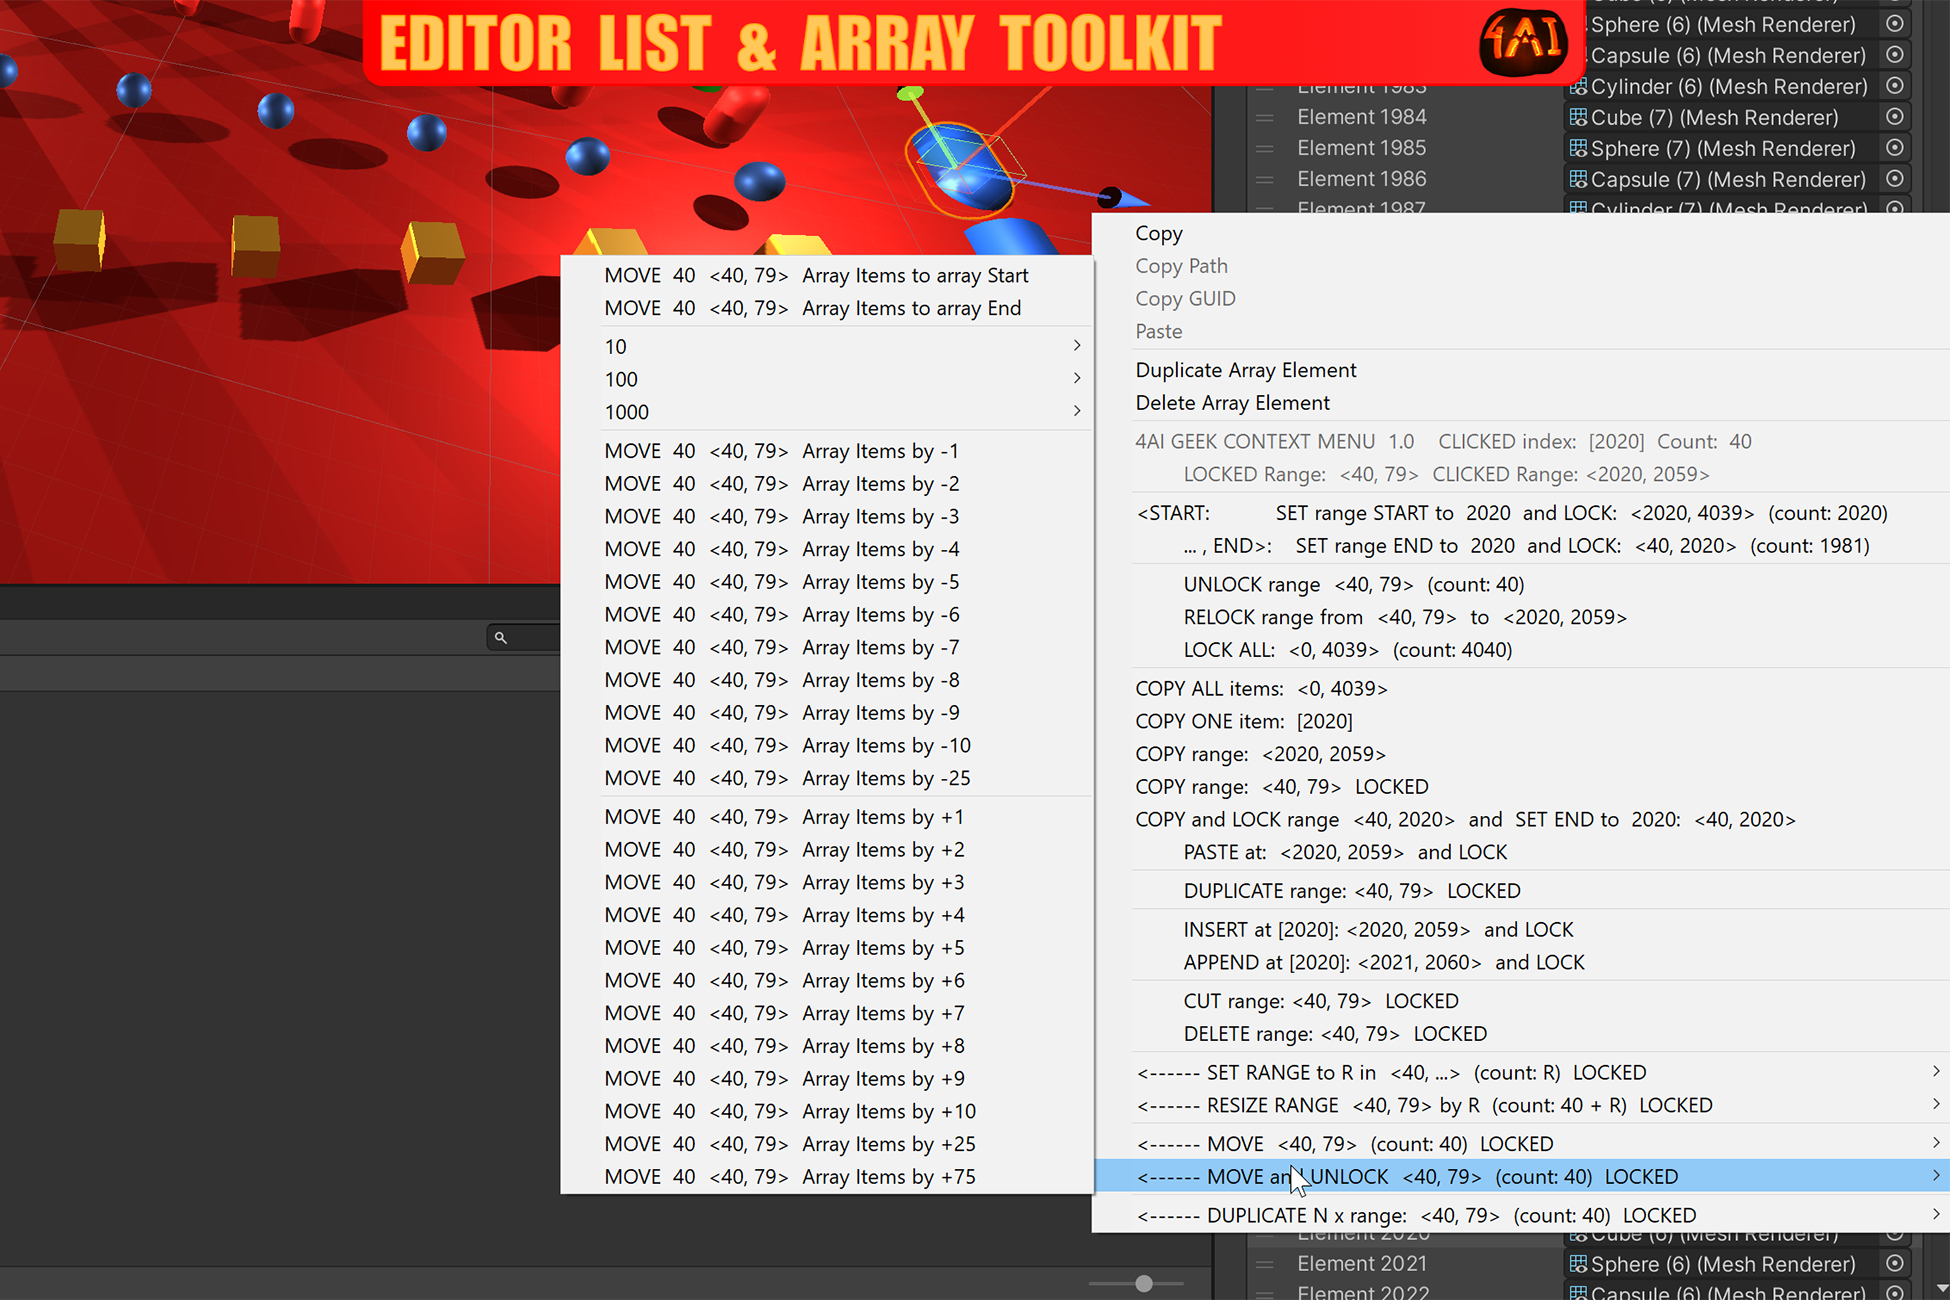 editor-list-array-toolkit-45.png